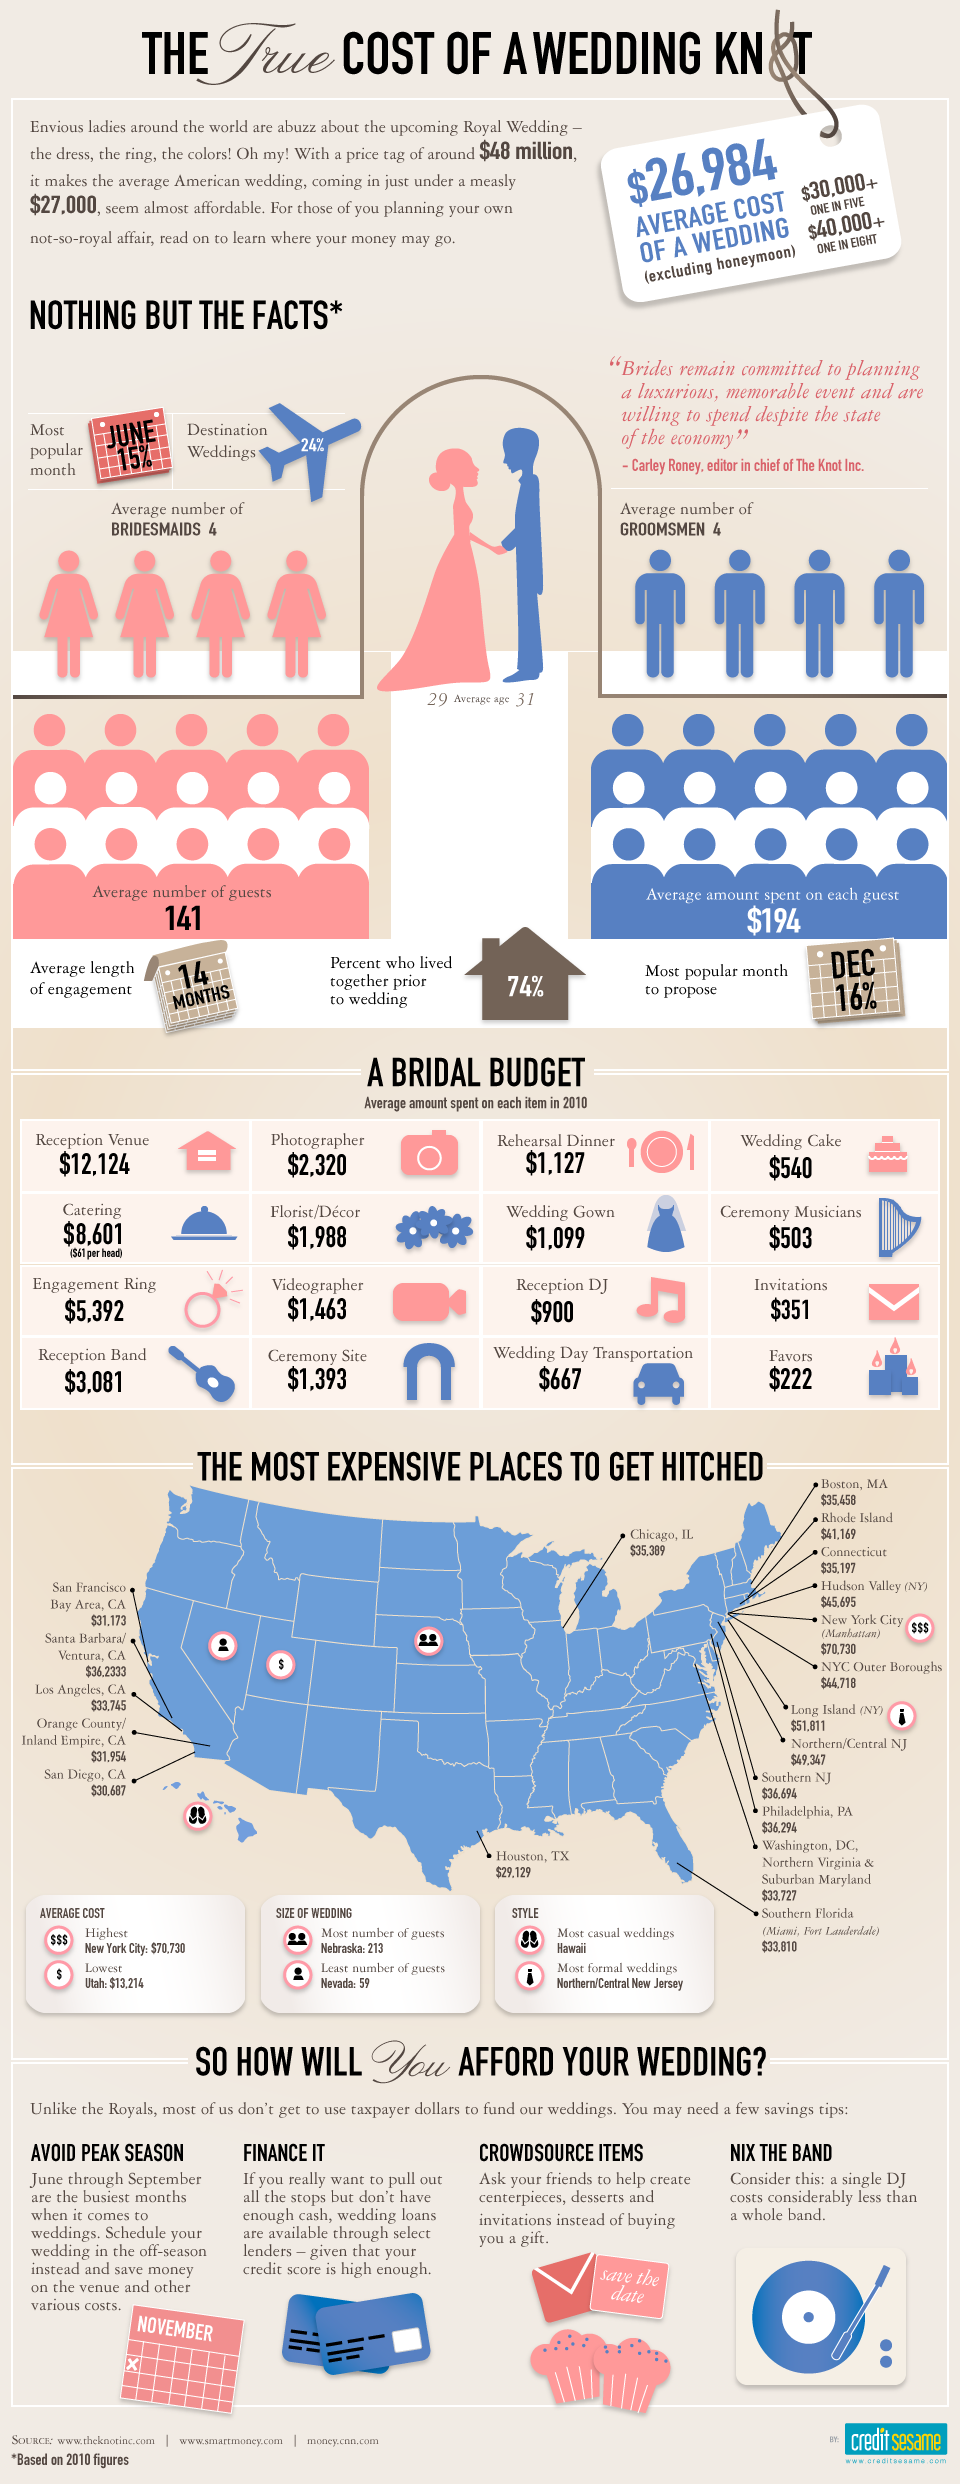 Infographics don't lie. The average cost of a wedding in NYC is $70,730 which is why I'll be having my wedding in Fargo. Nothing says Destination Wedding like North Dakota.